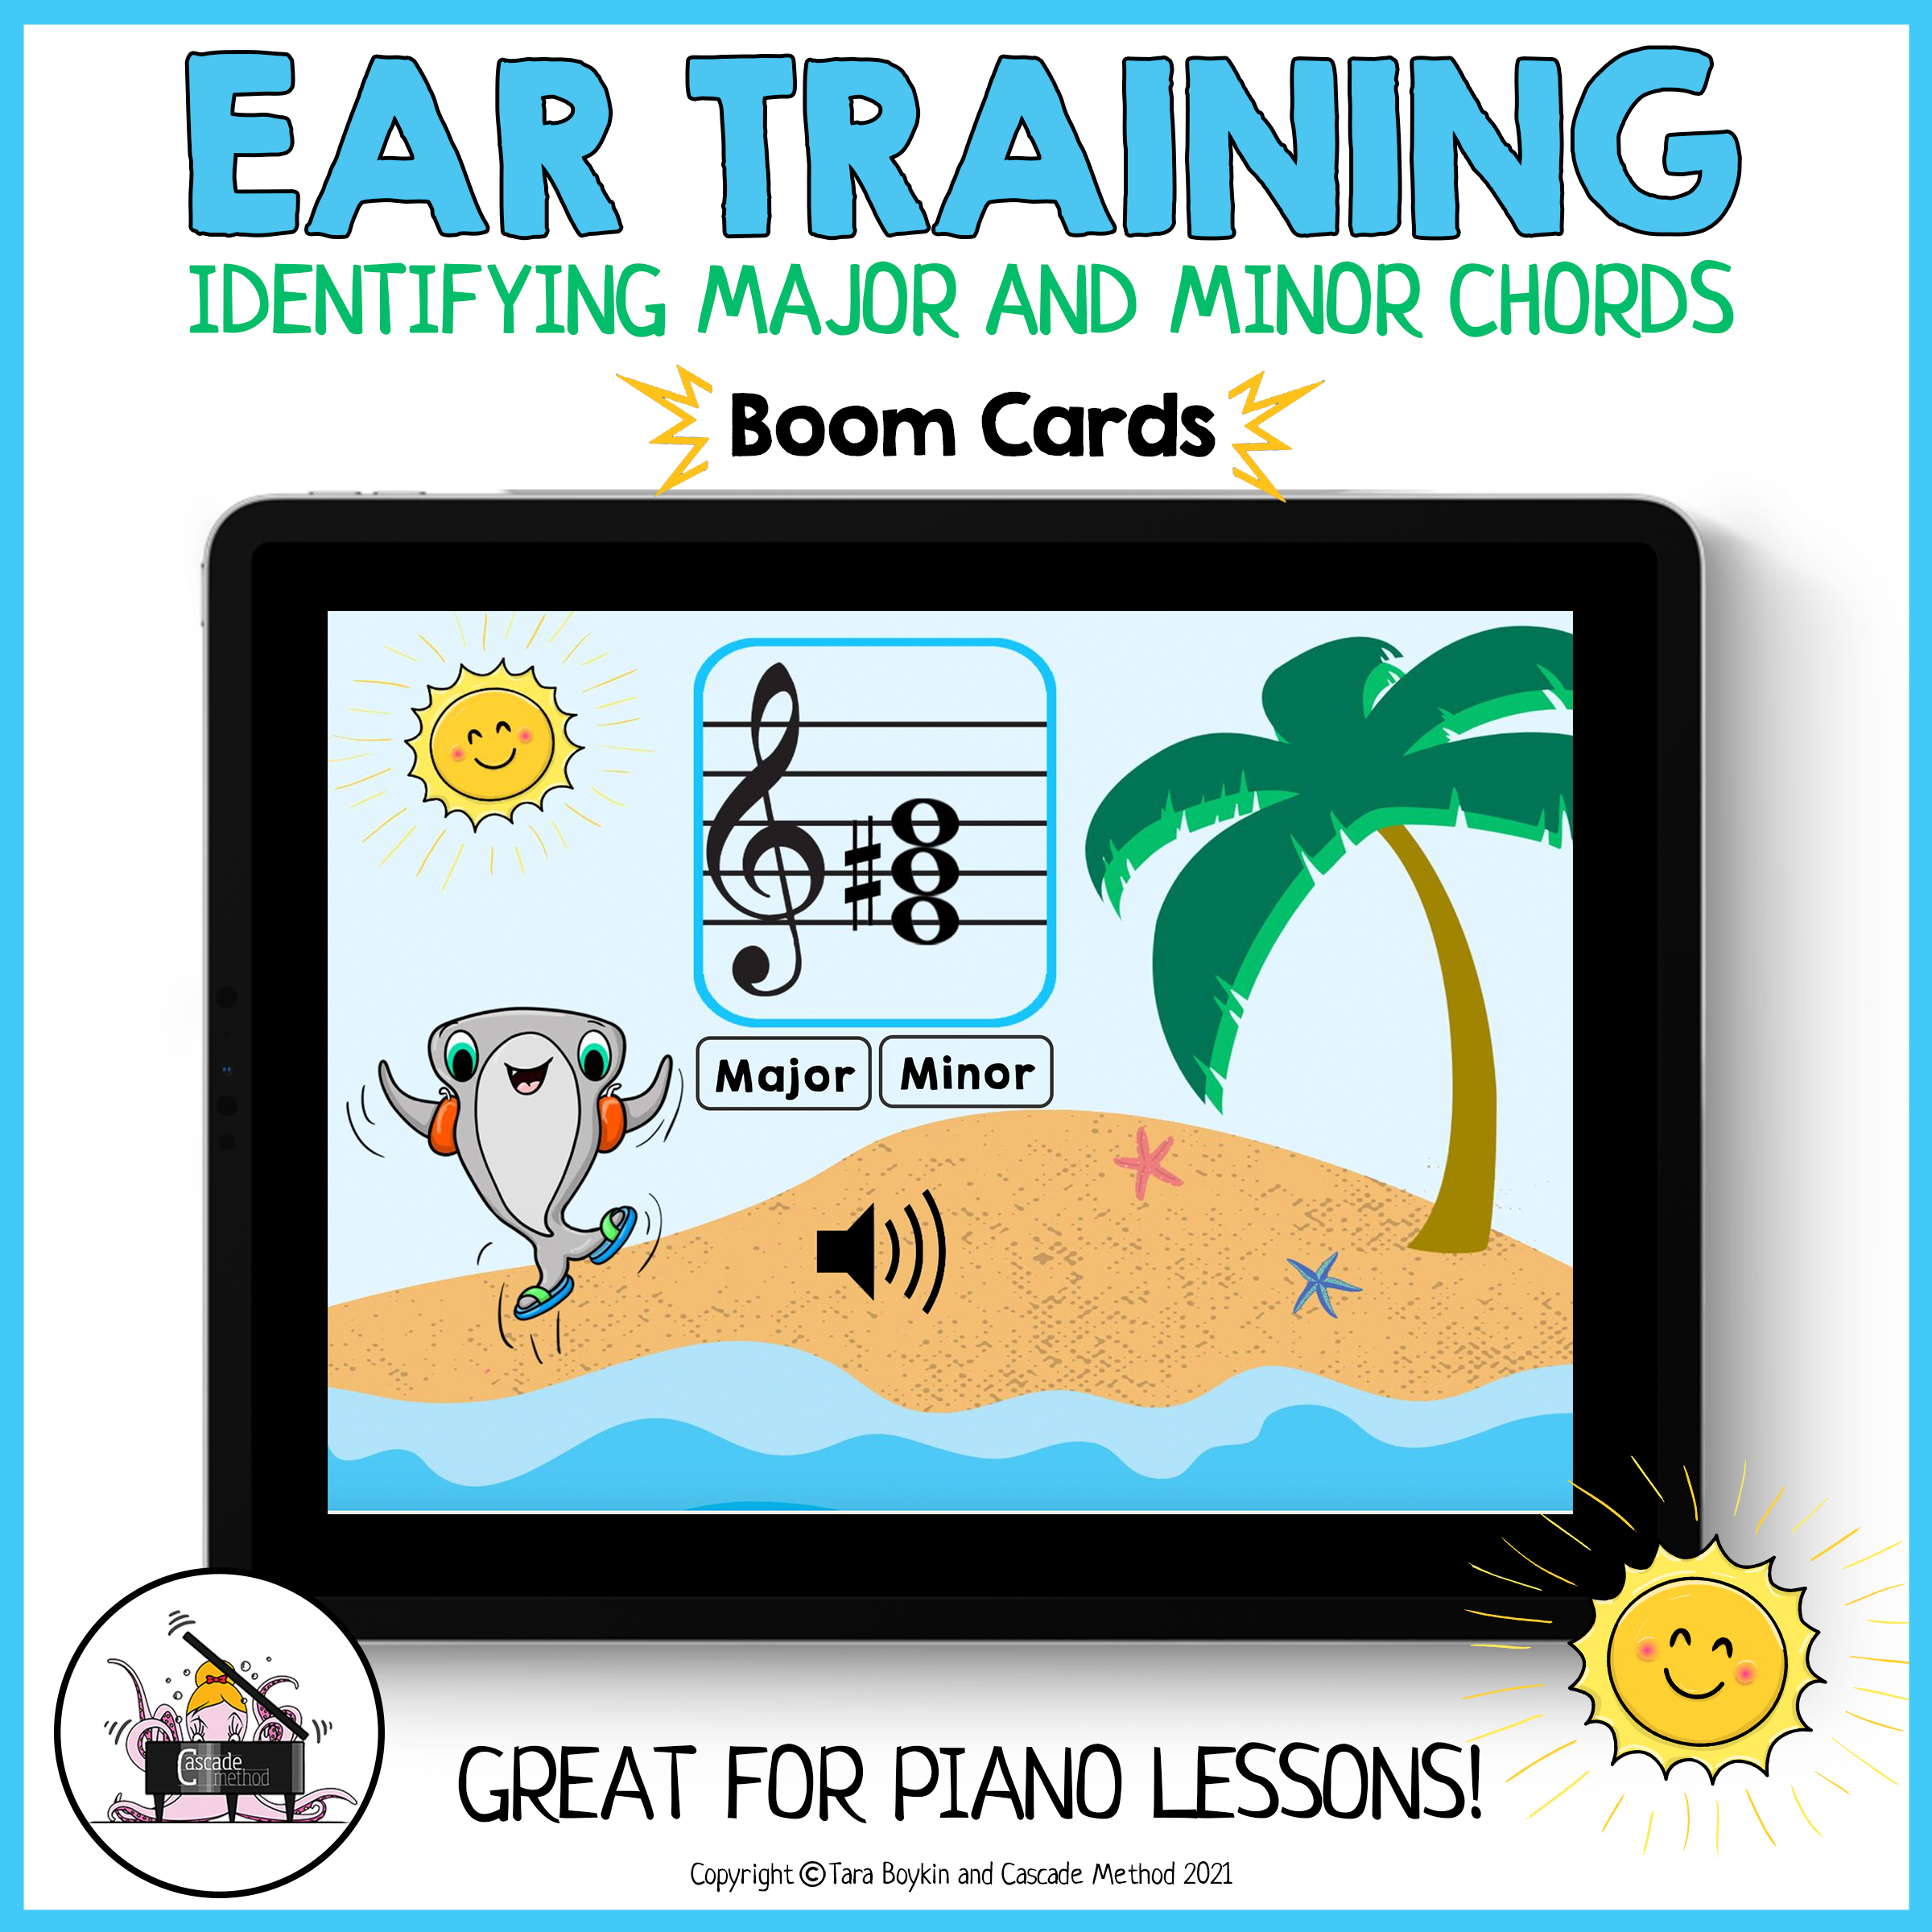 Major and Minor Chords for Ear Training using Boom Cards